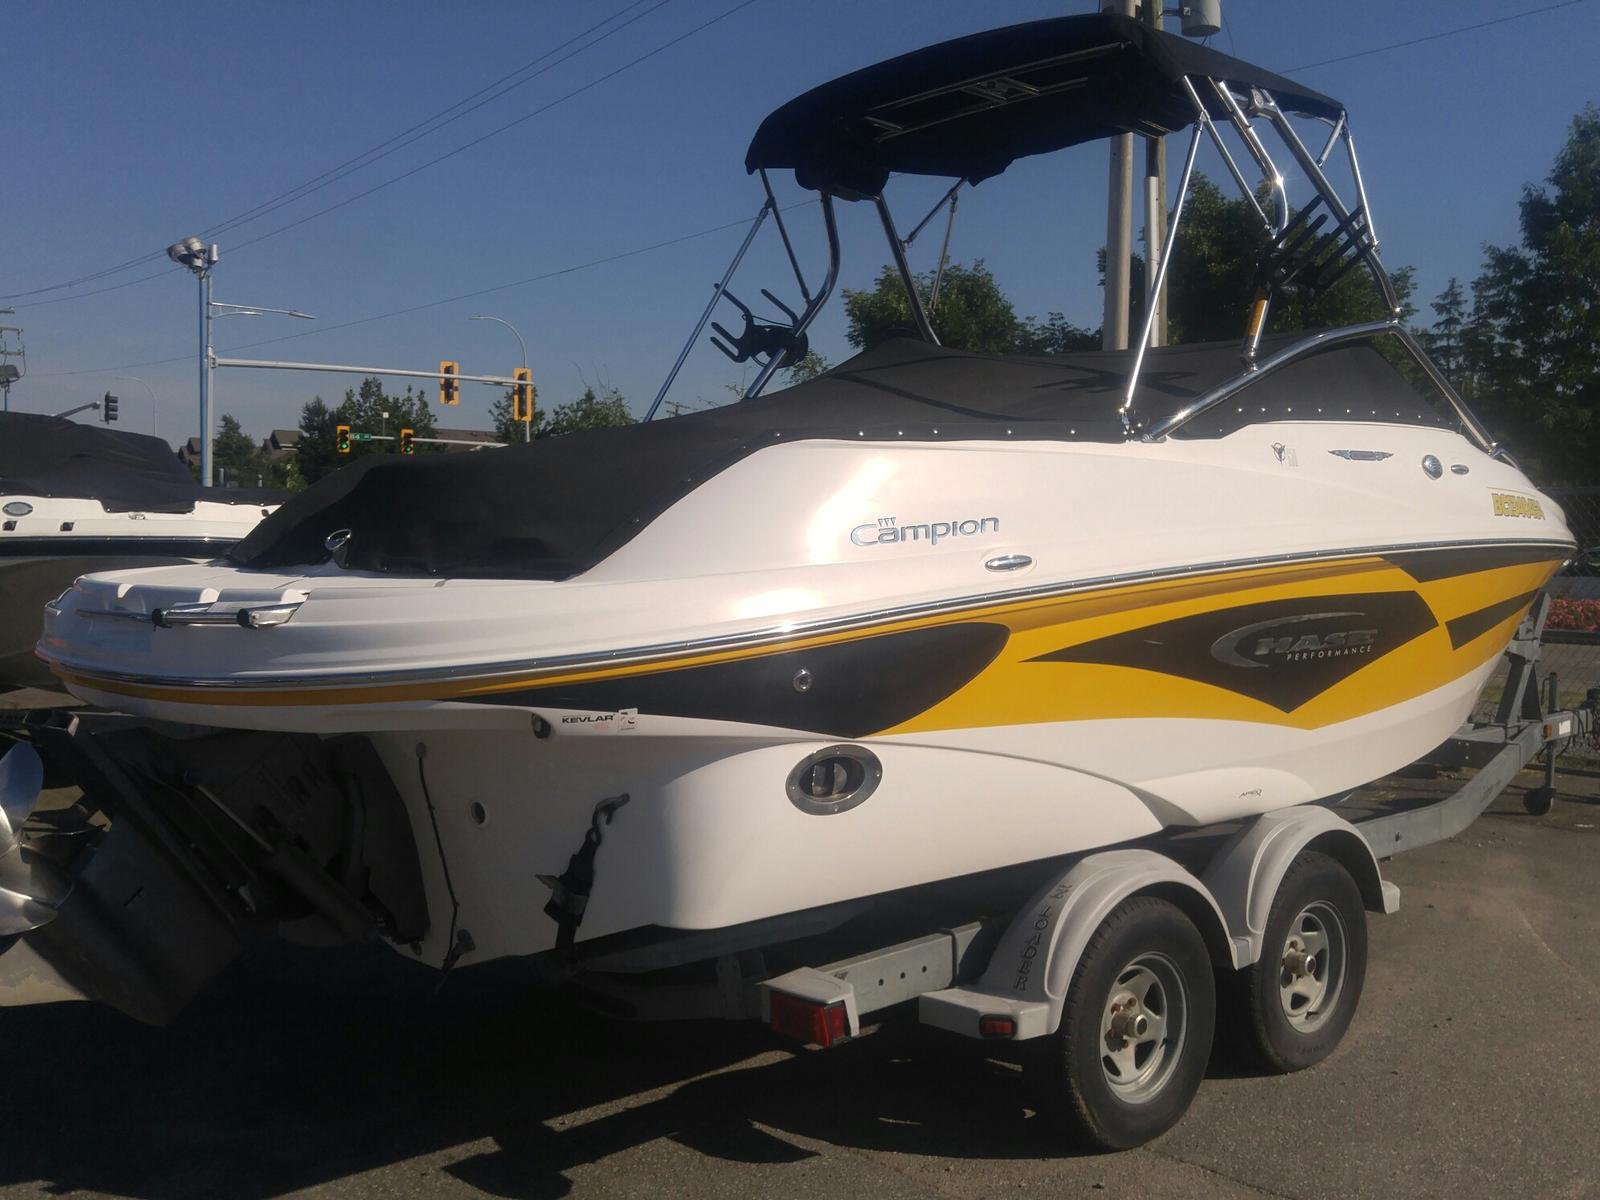 Boats from Campion and Hewescraft Breakwater Marine Surrey, BC (604